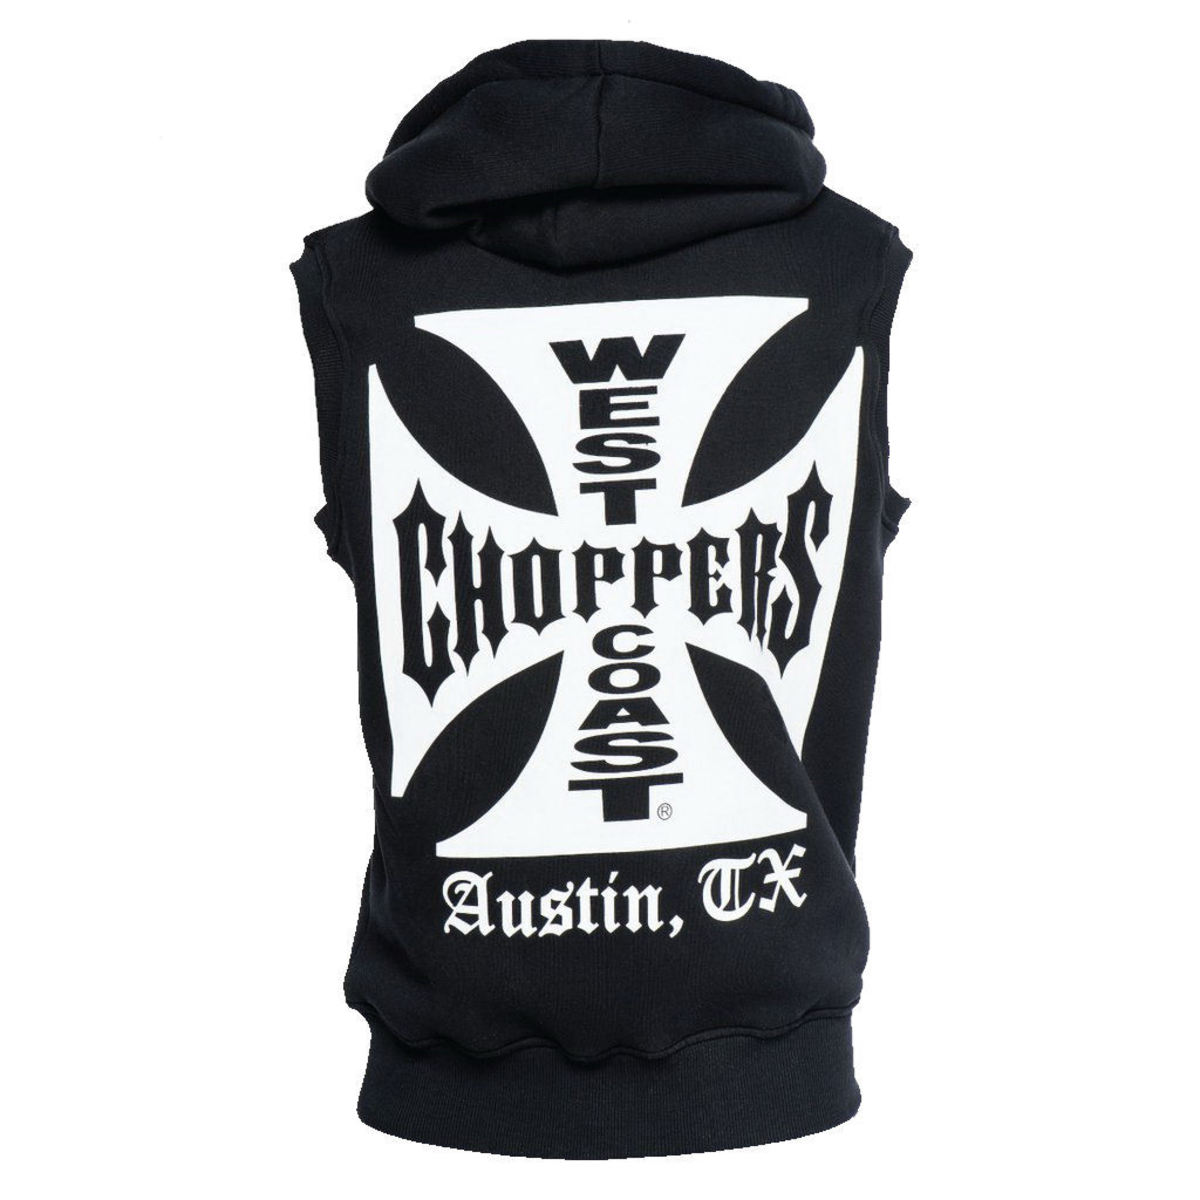 vesta - IRON CROSS SLEEVELESS HOODY - West Coast Choppers - WCCHD161ZW